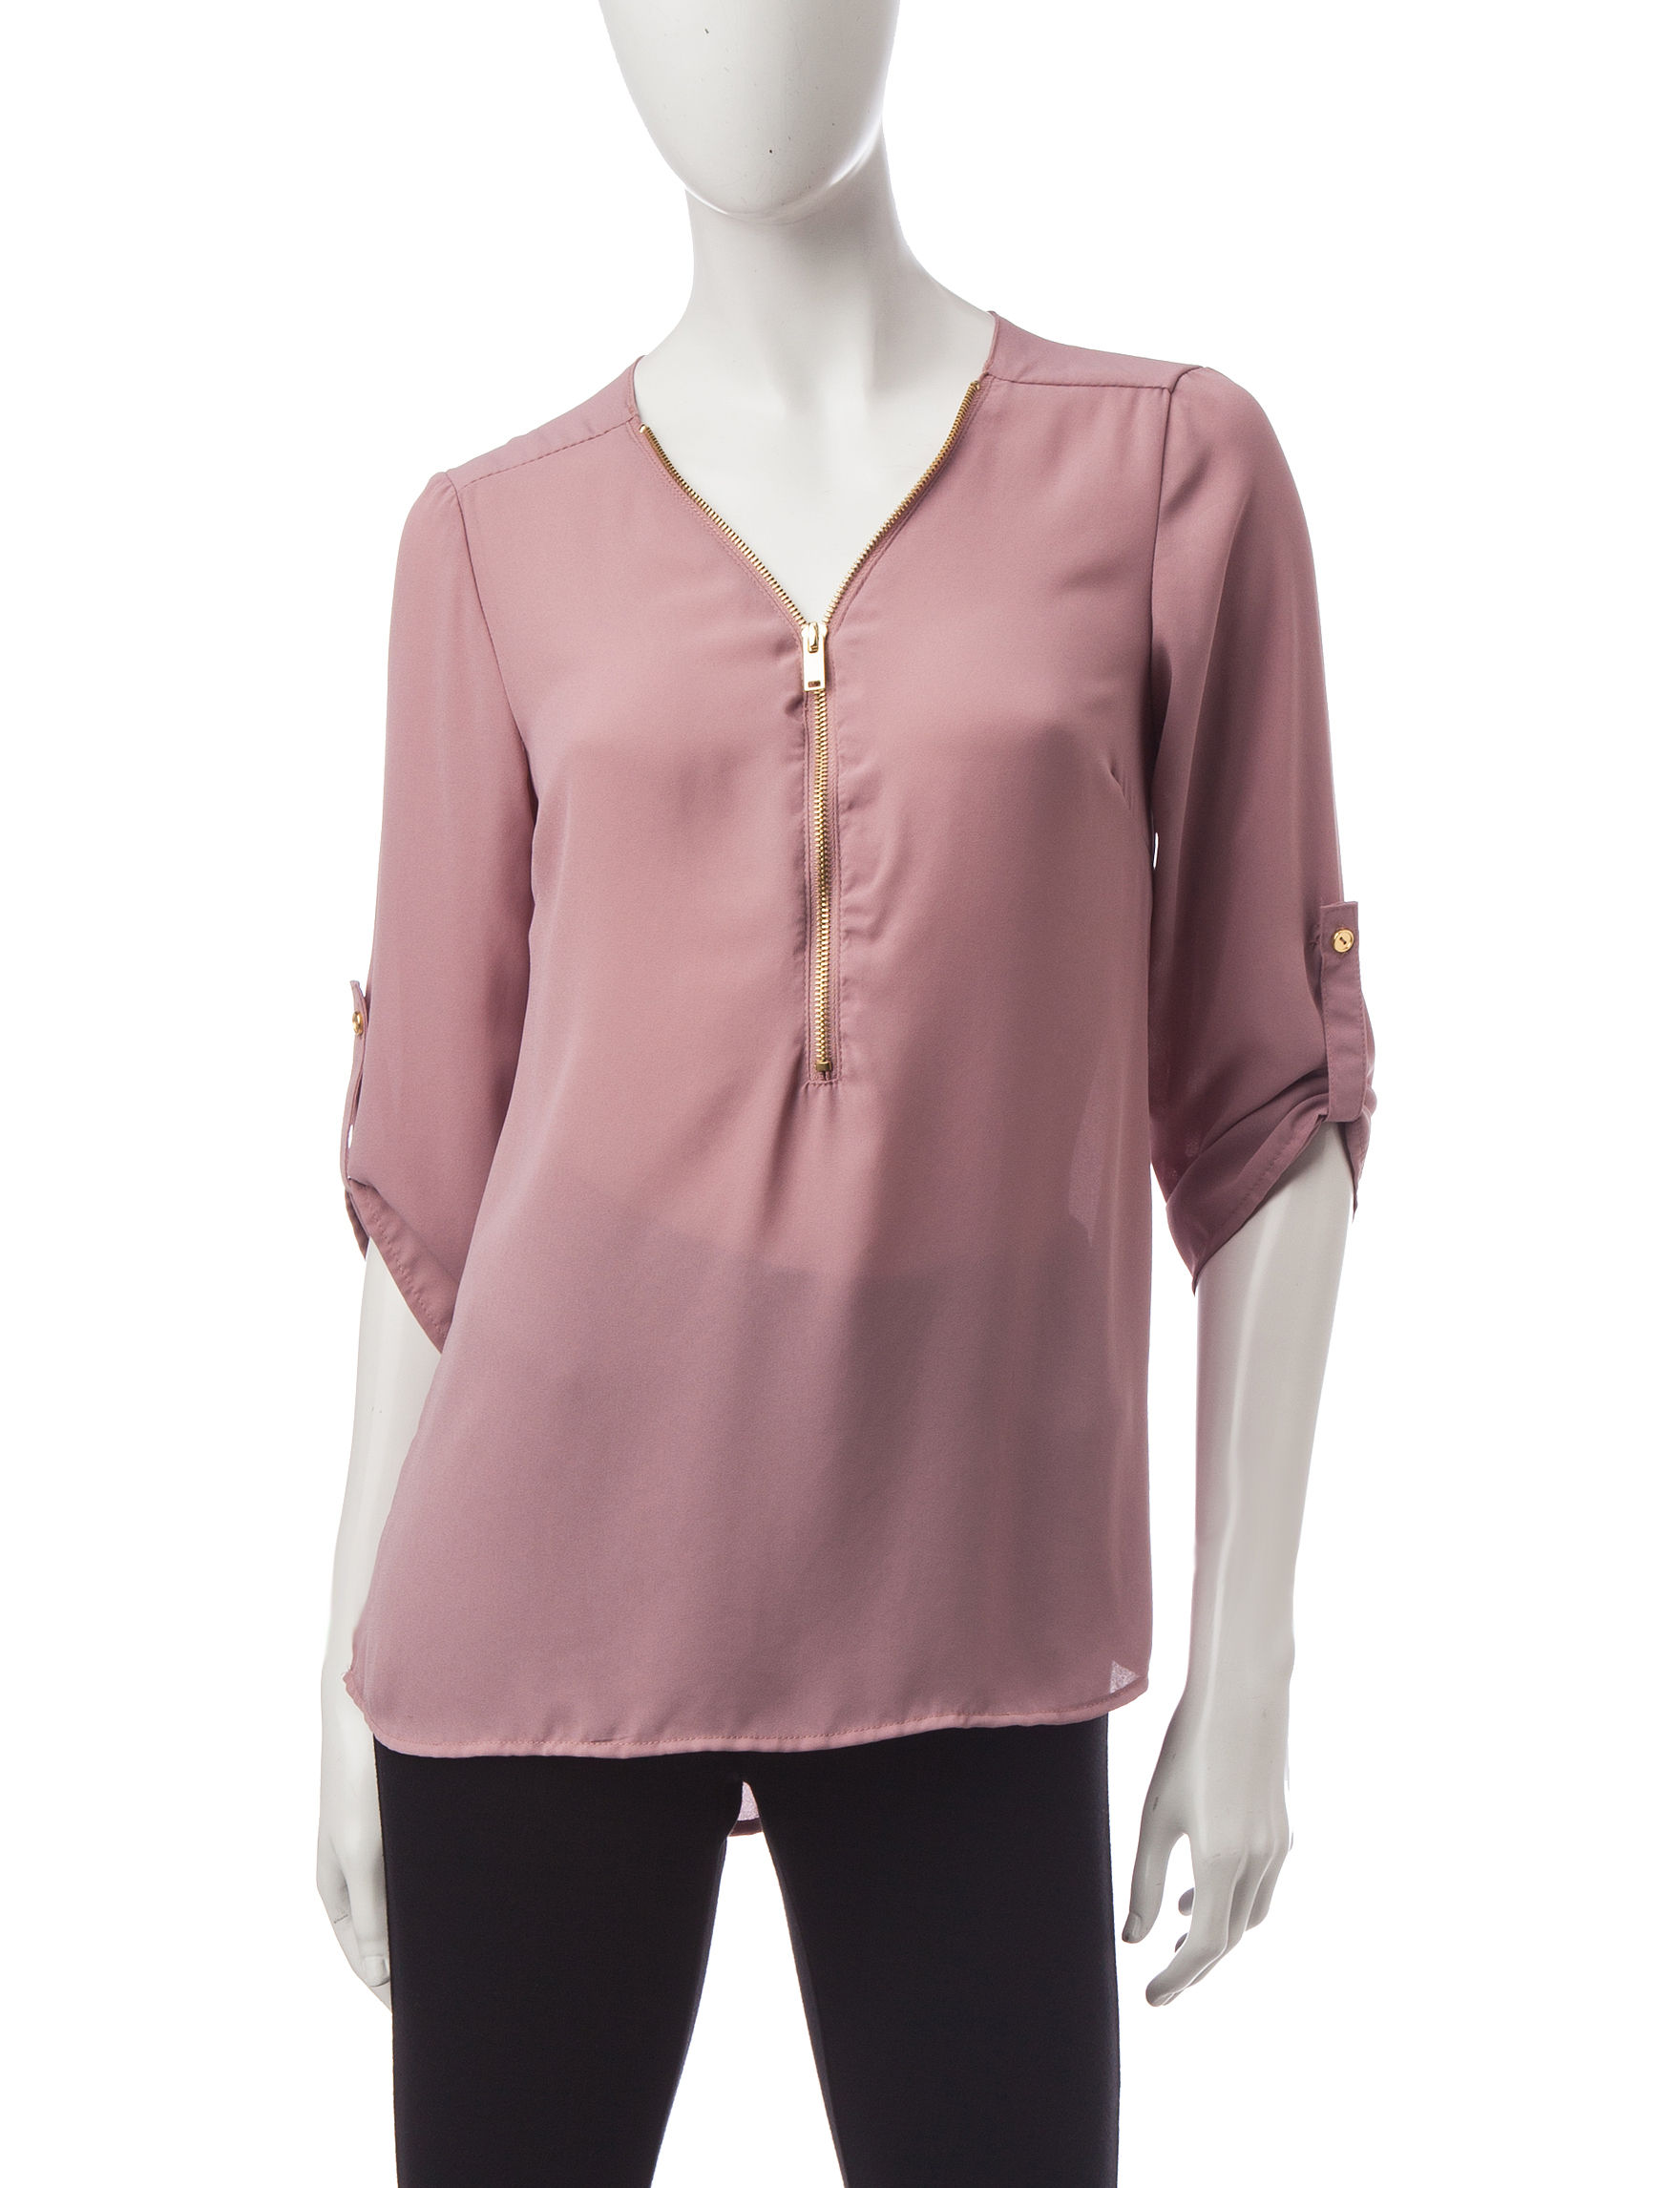 Wishful Park Mauve Pull-overs Shirts & Blouses